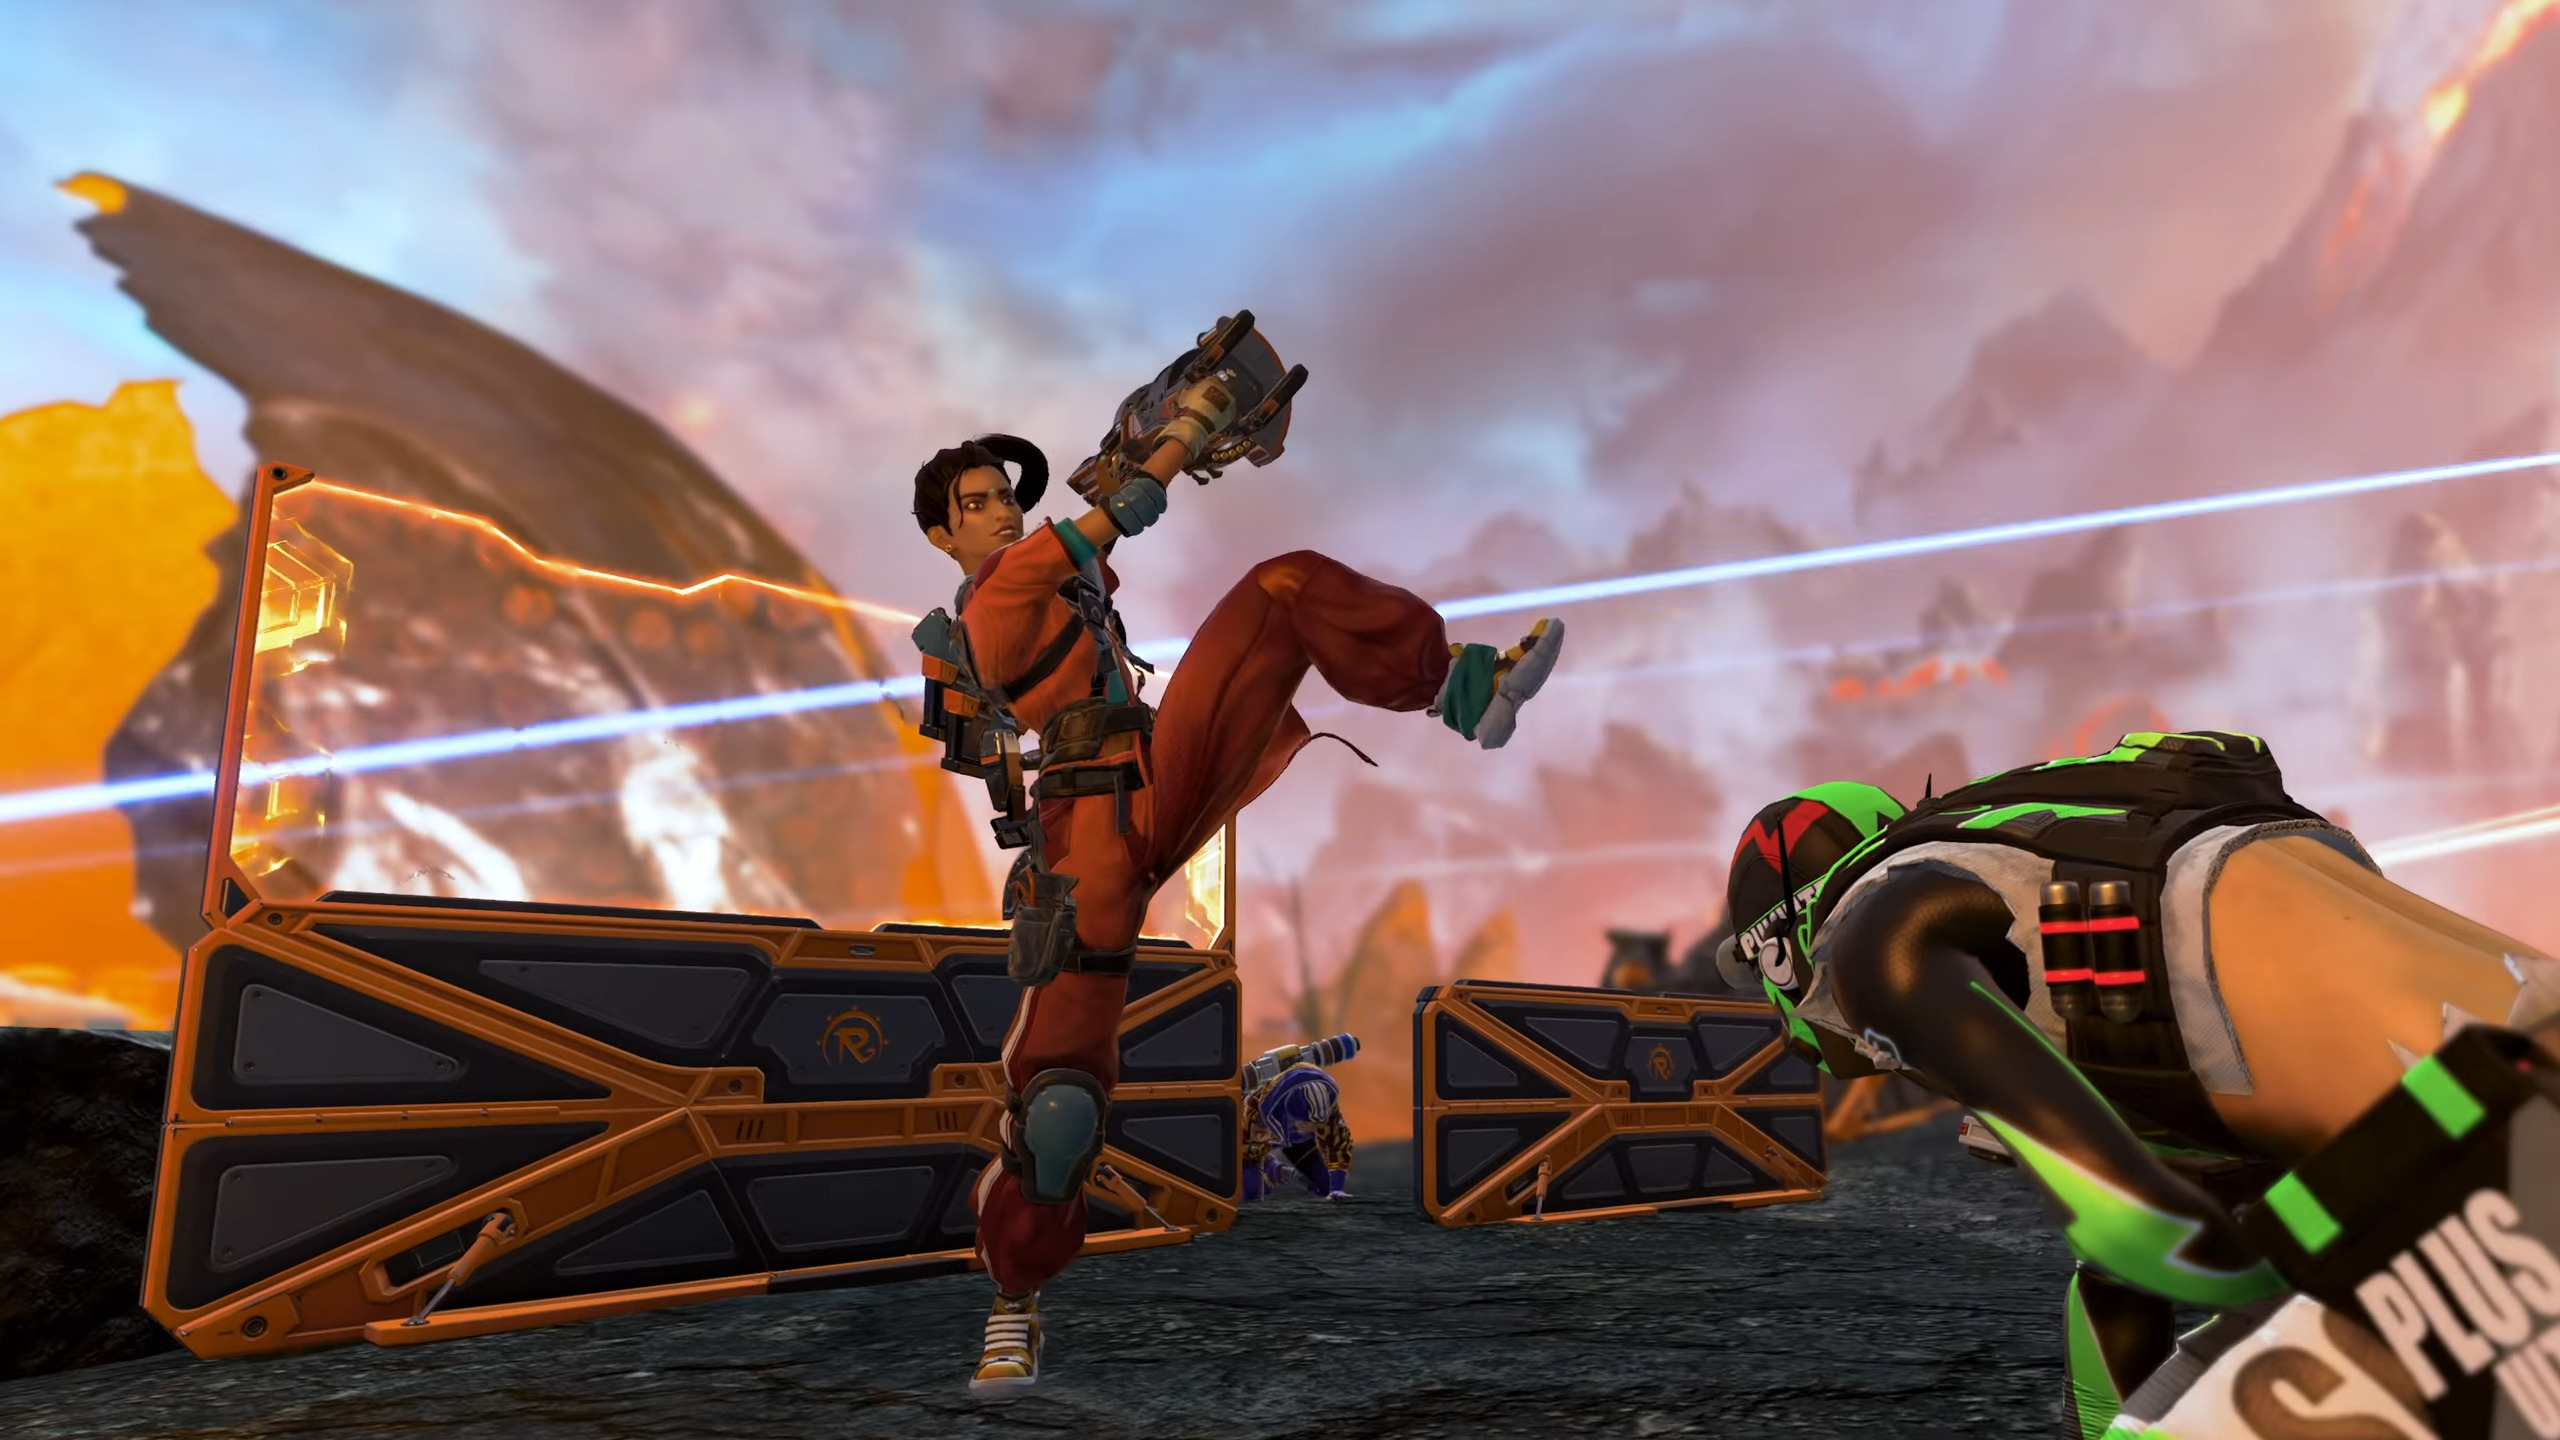 What's Happening To Apex Legends? Season 6 Is Lacking New Content So Far, With Recycled Game Modes And Skins